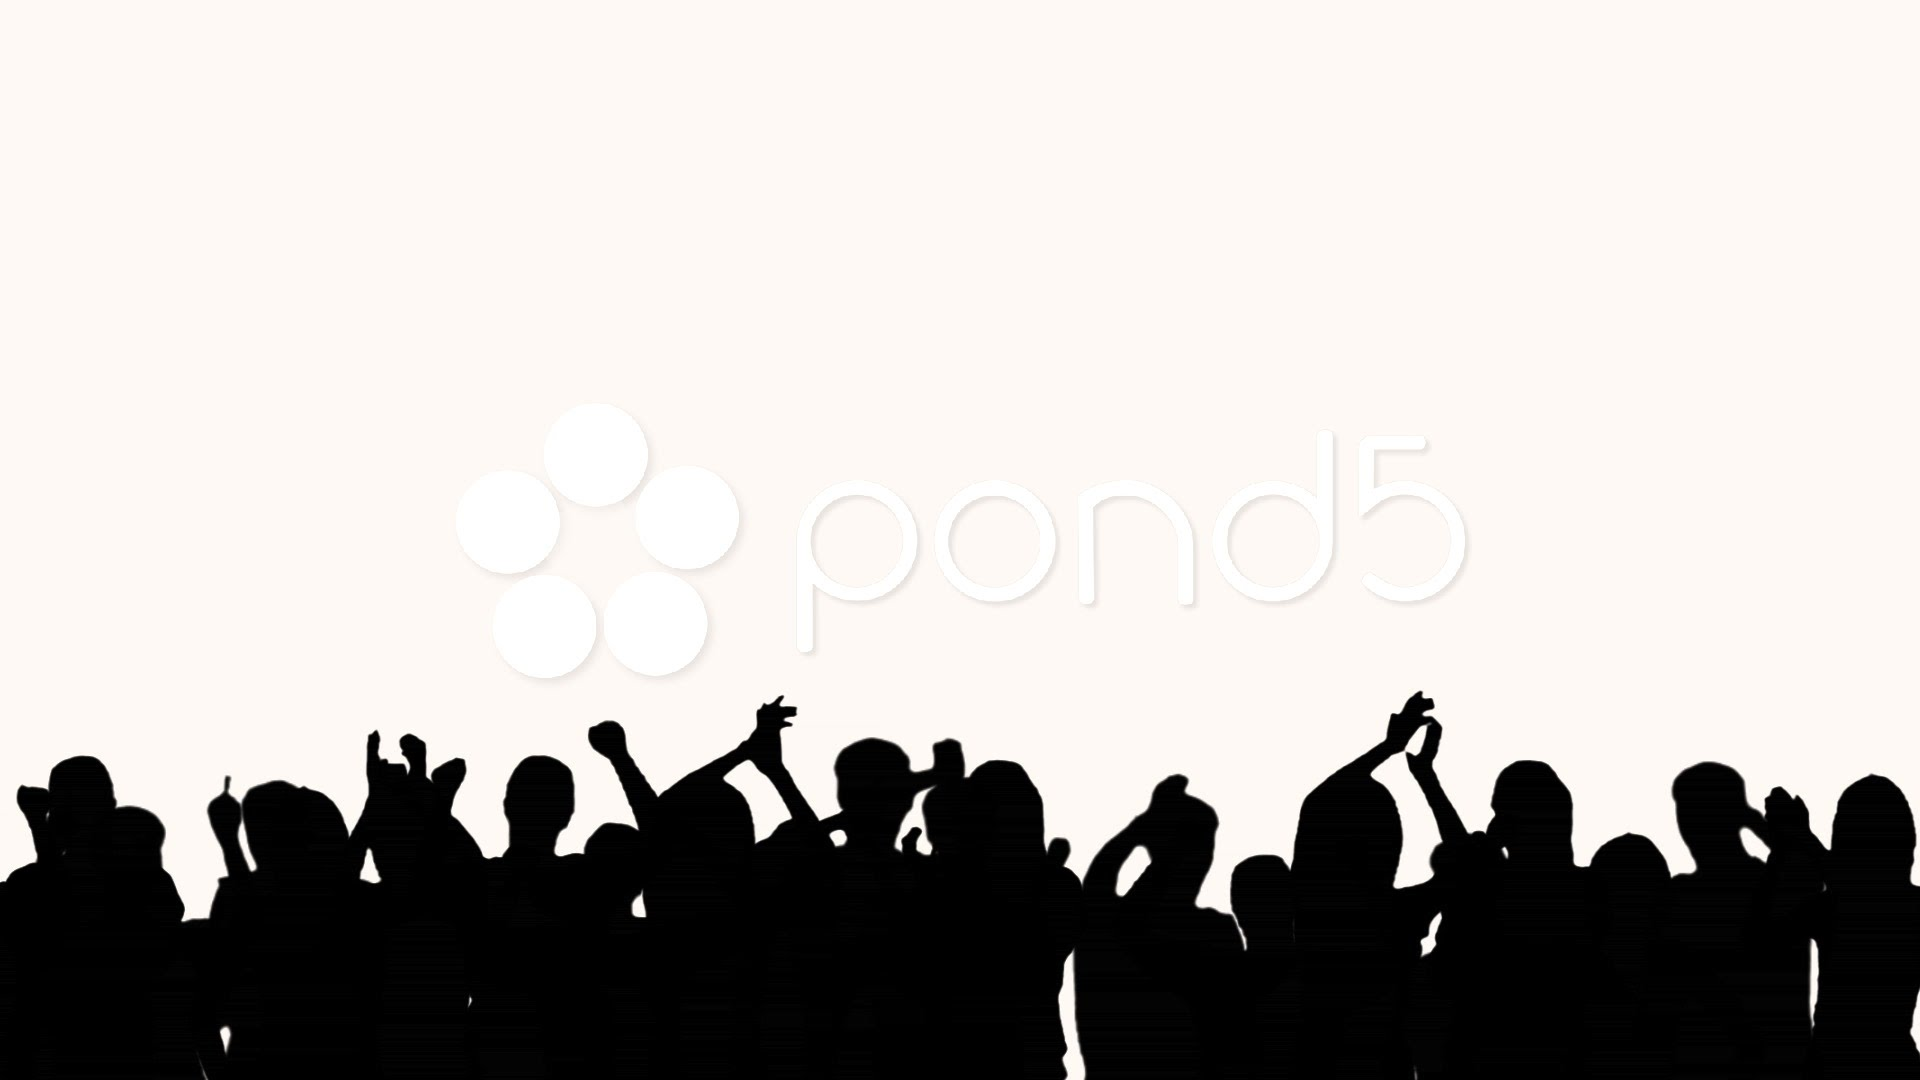 1920x1080 Concert Crowd Silhouette Vector